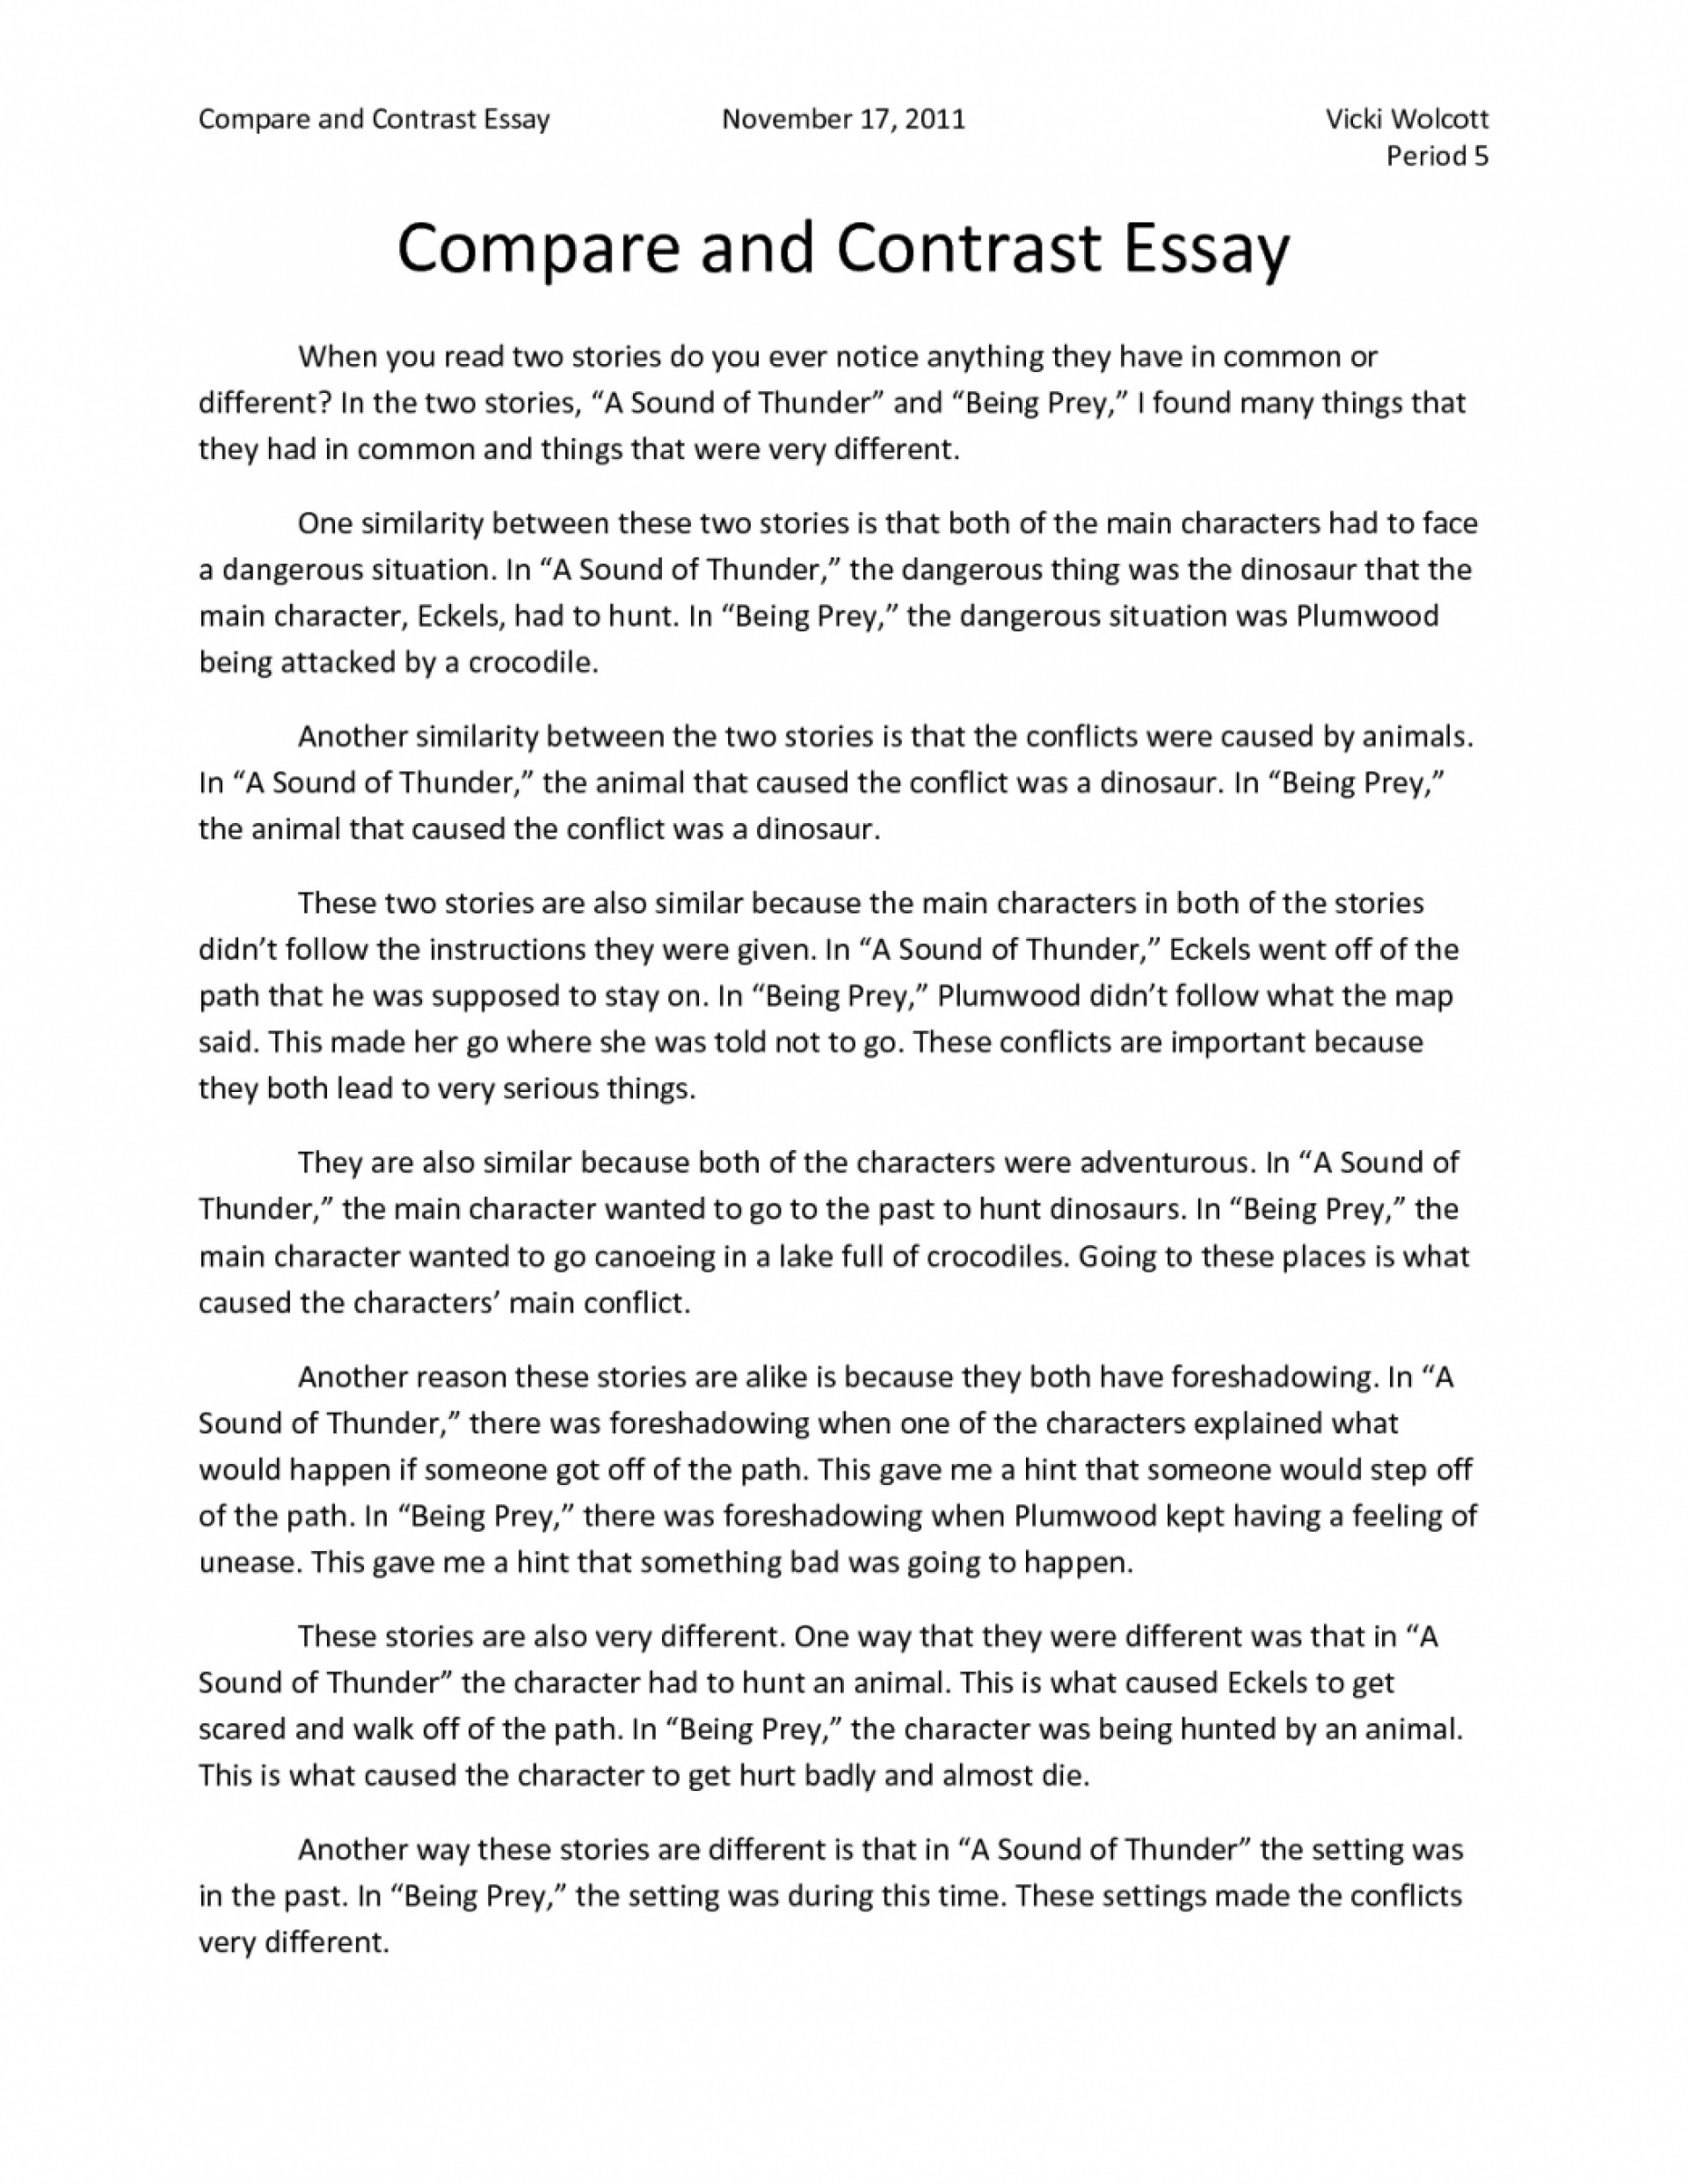 003 Compare And Contrast Essay Topics Example Good For College Students Sample Research Paper Writing Argumentative Fantastic Elementary Ielts 1920